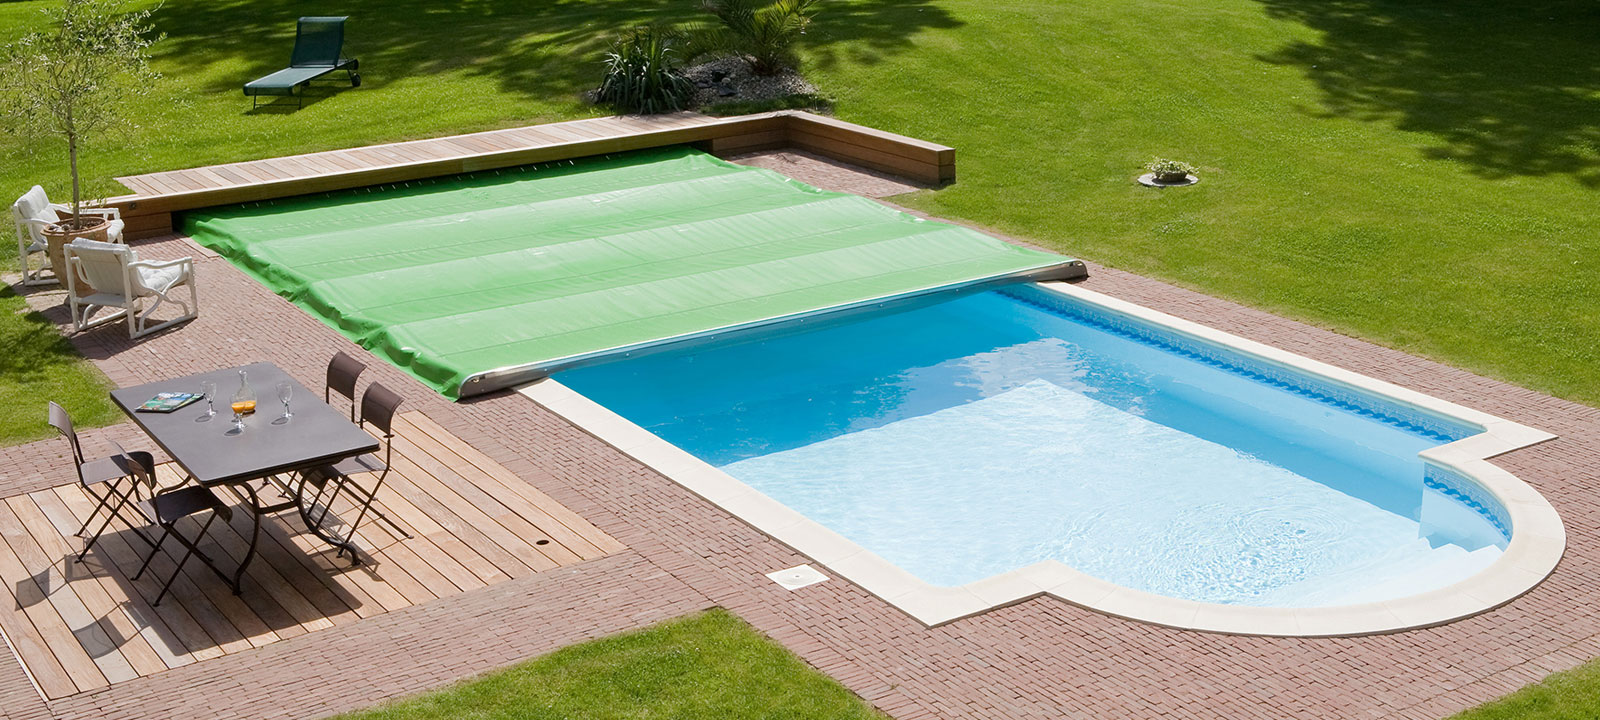 Couverture piscine rigide couverture piscine rigide with for Piscine rigide